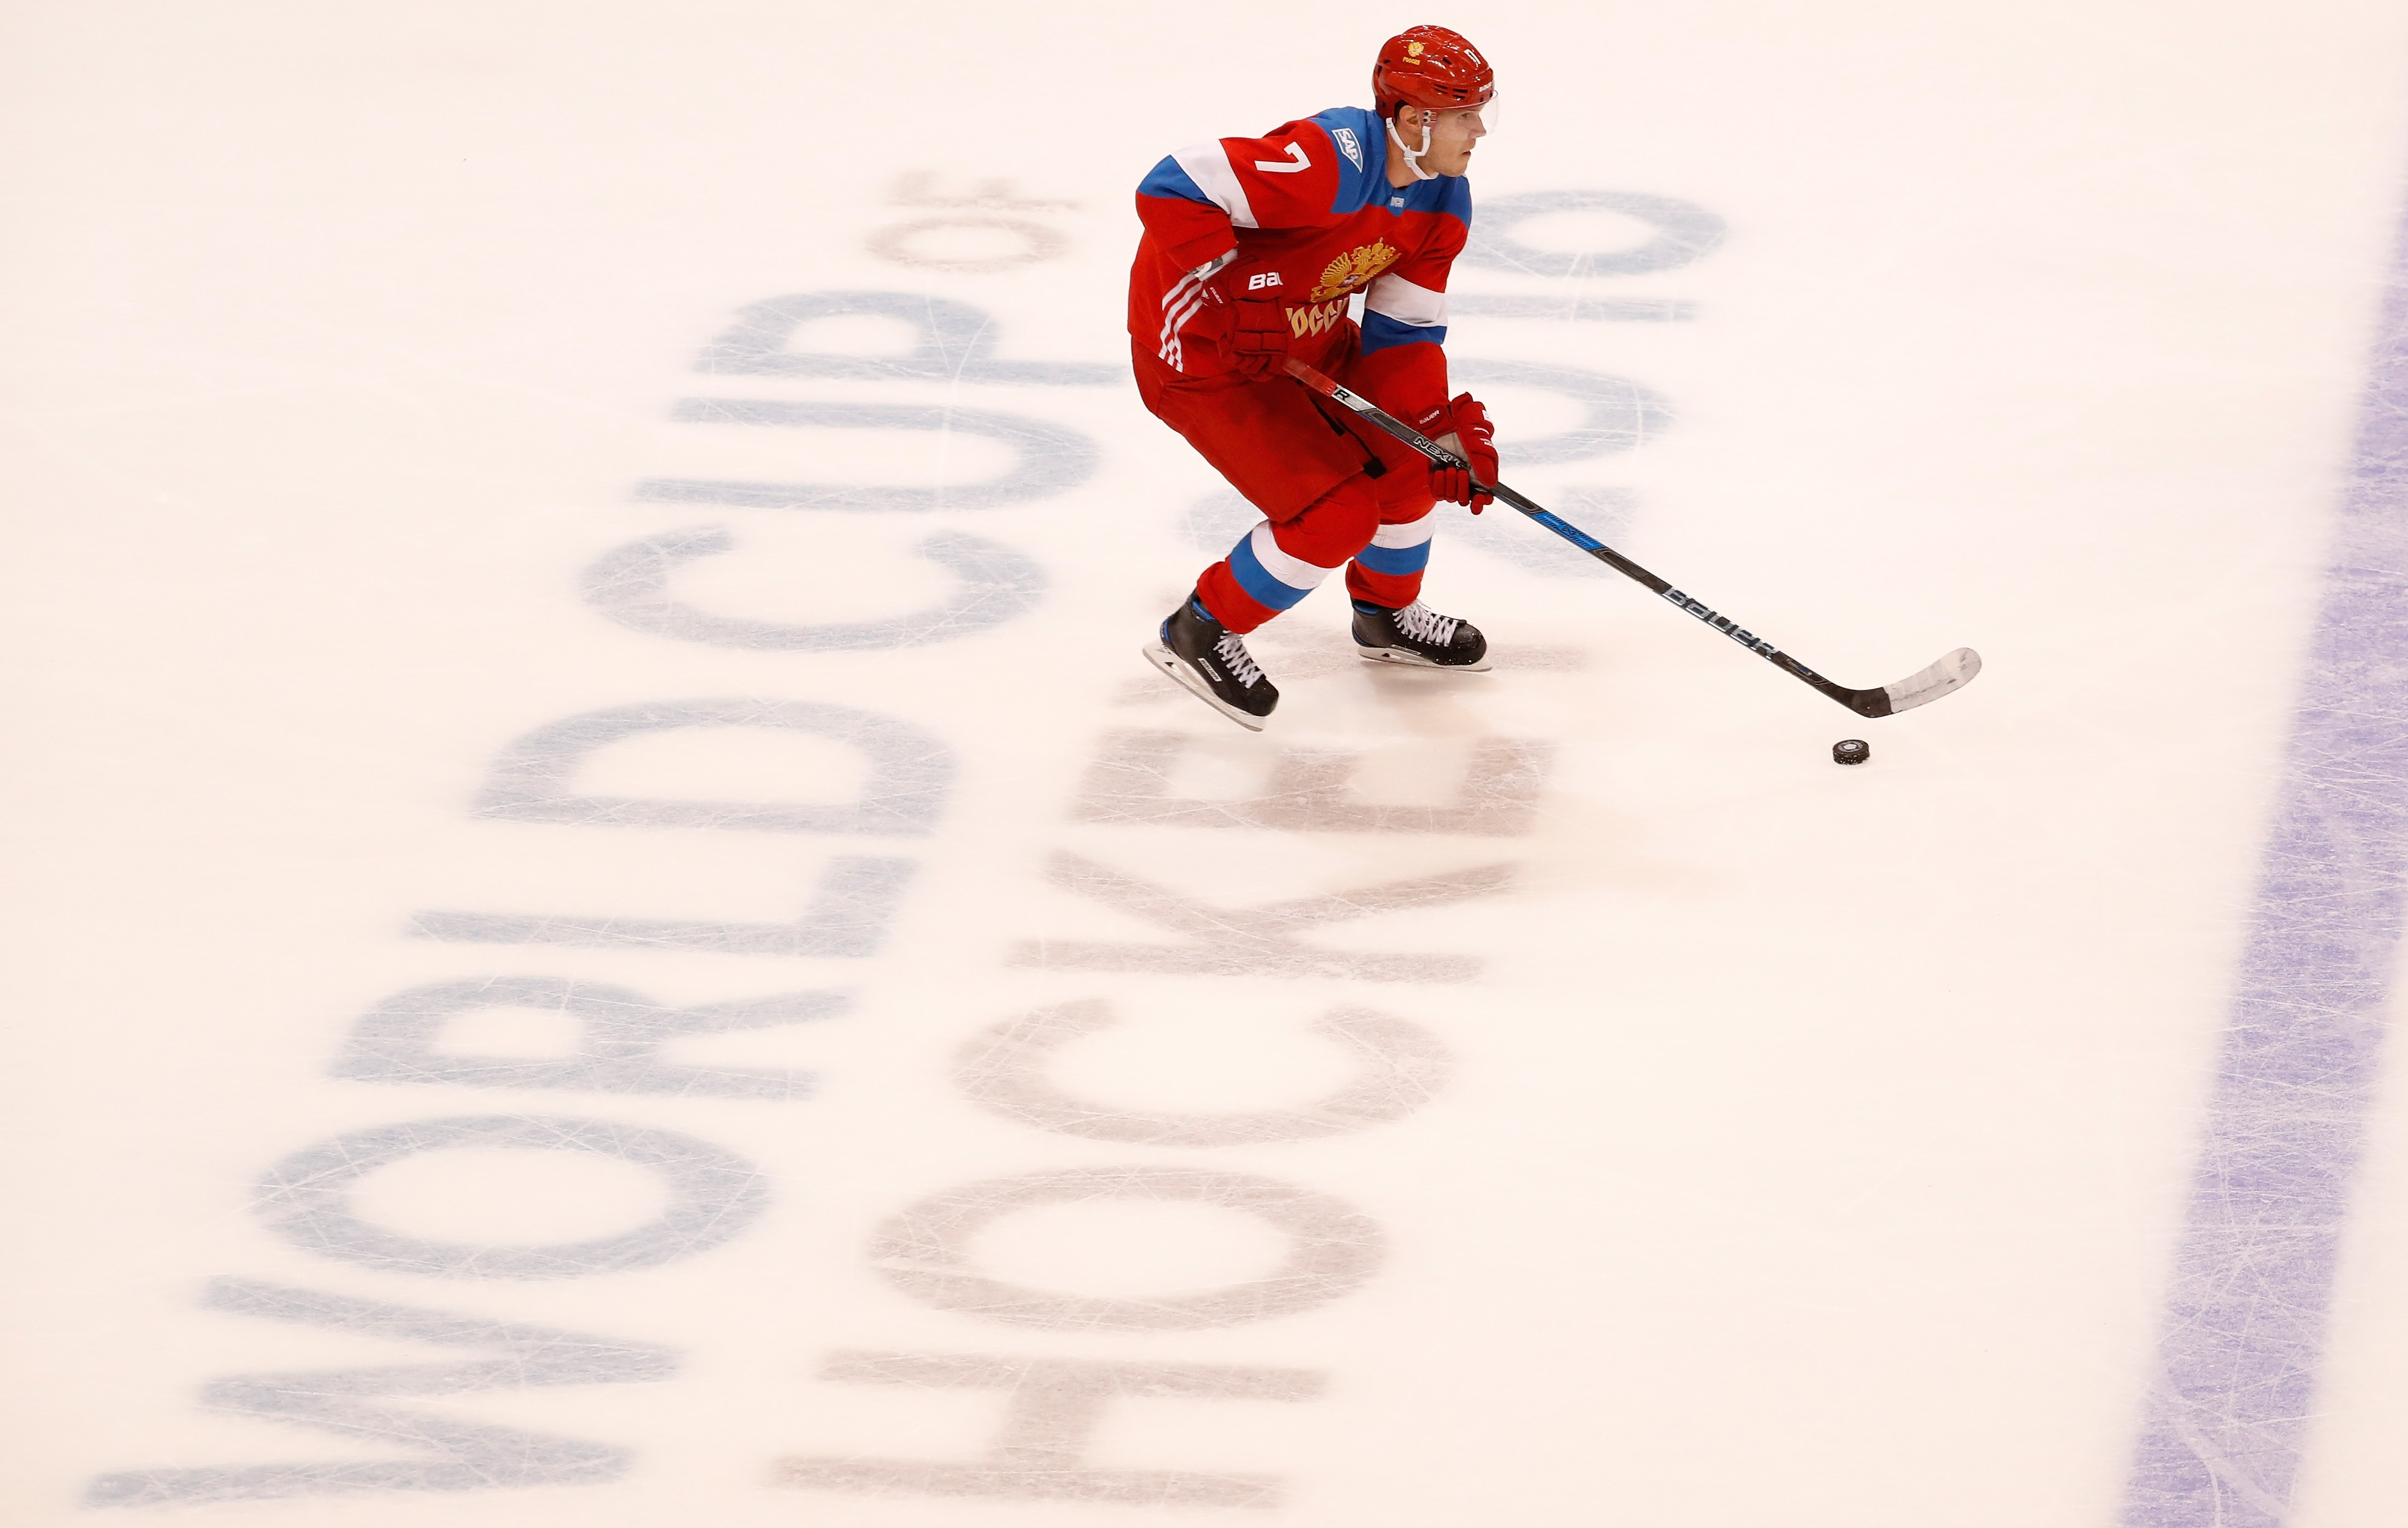 Dmitry Kulikov of Team Russia skates during the World Cup of Hockey. He's set to make his Sabres debut tonight.